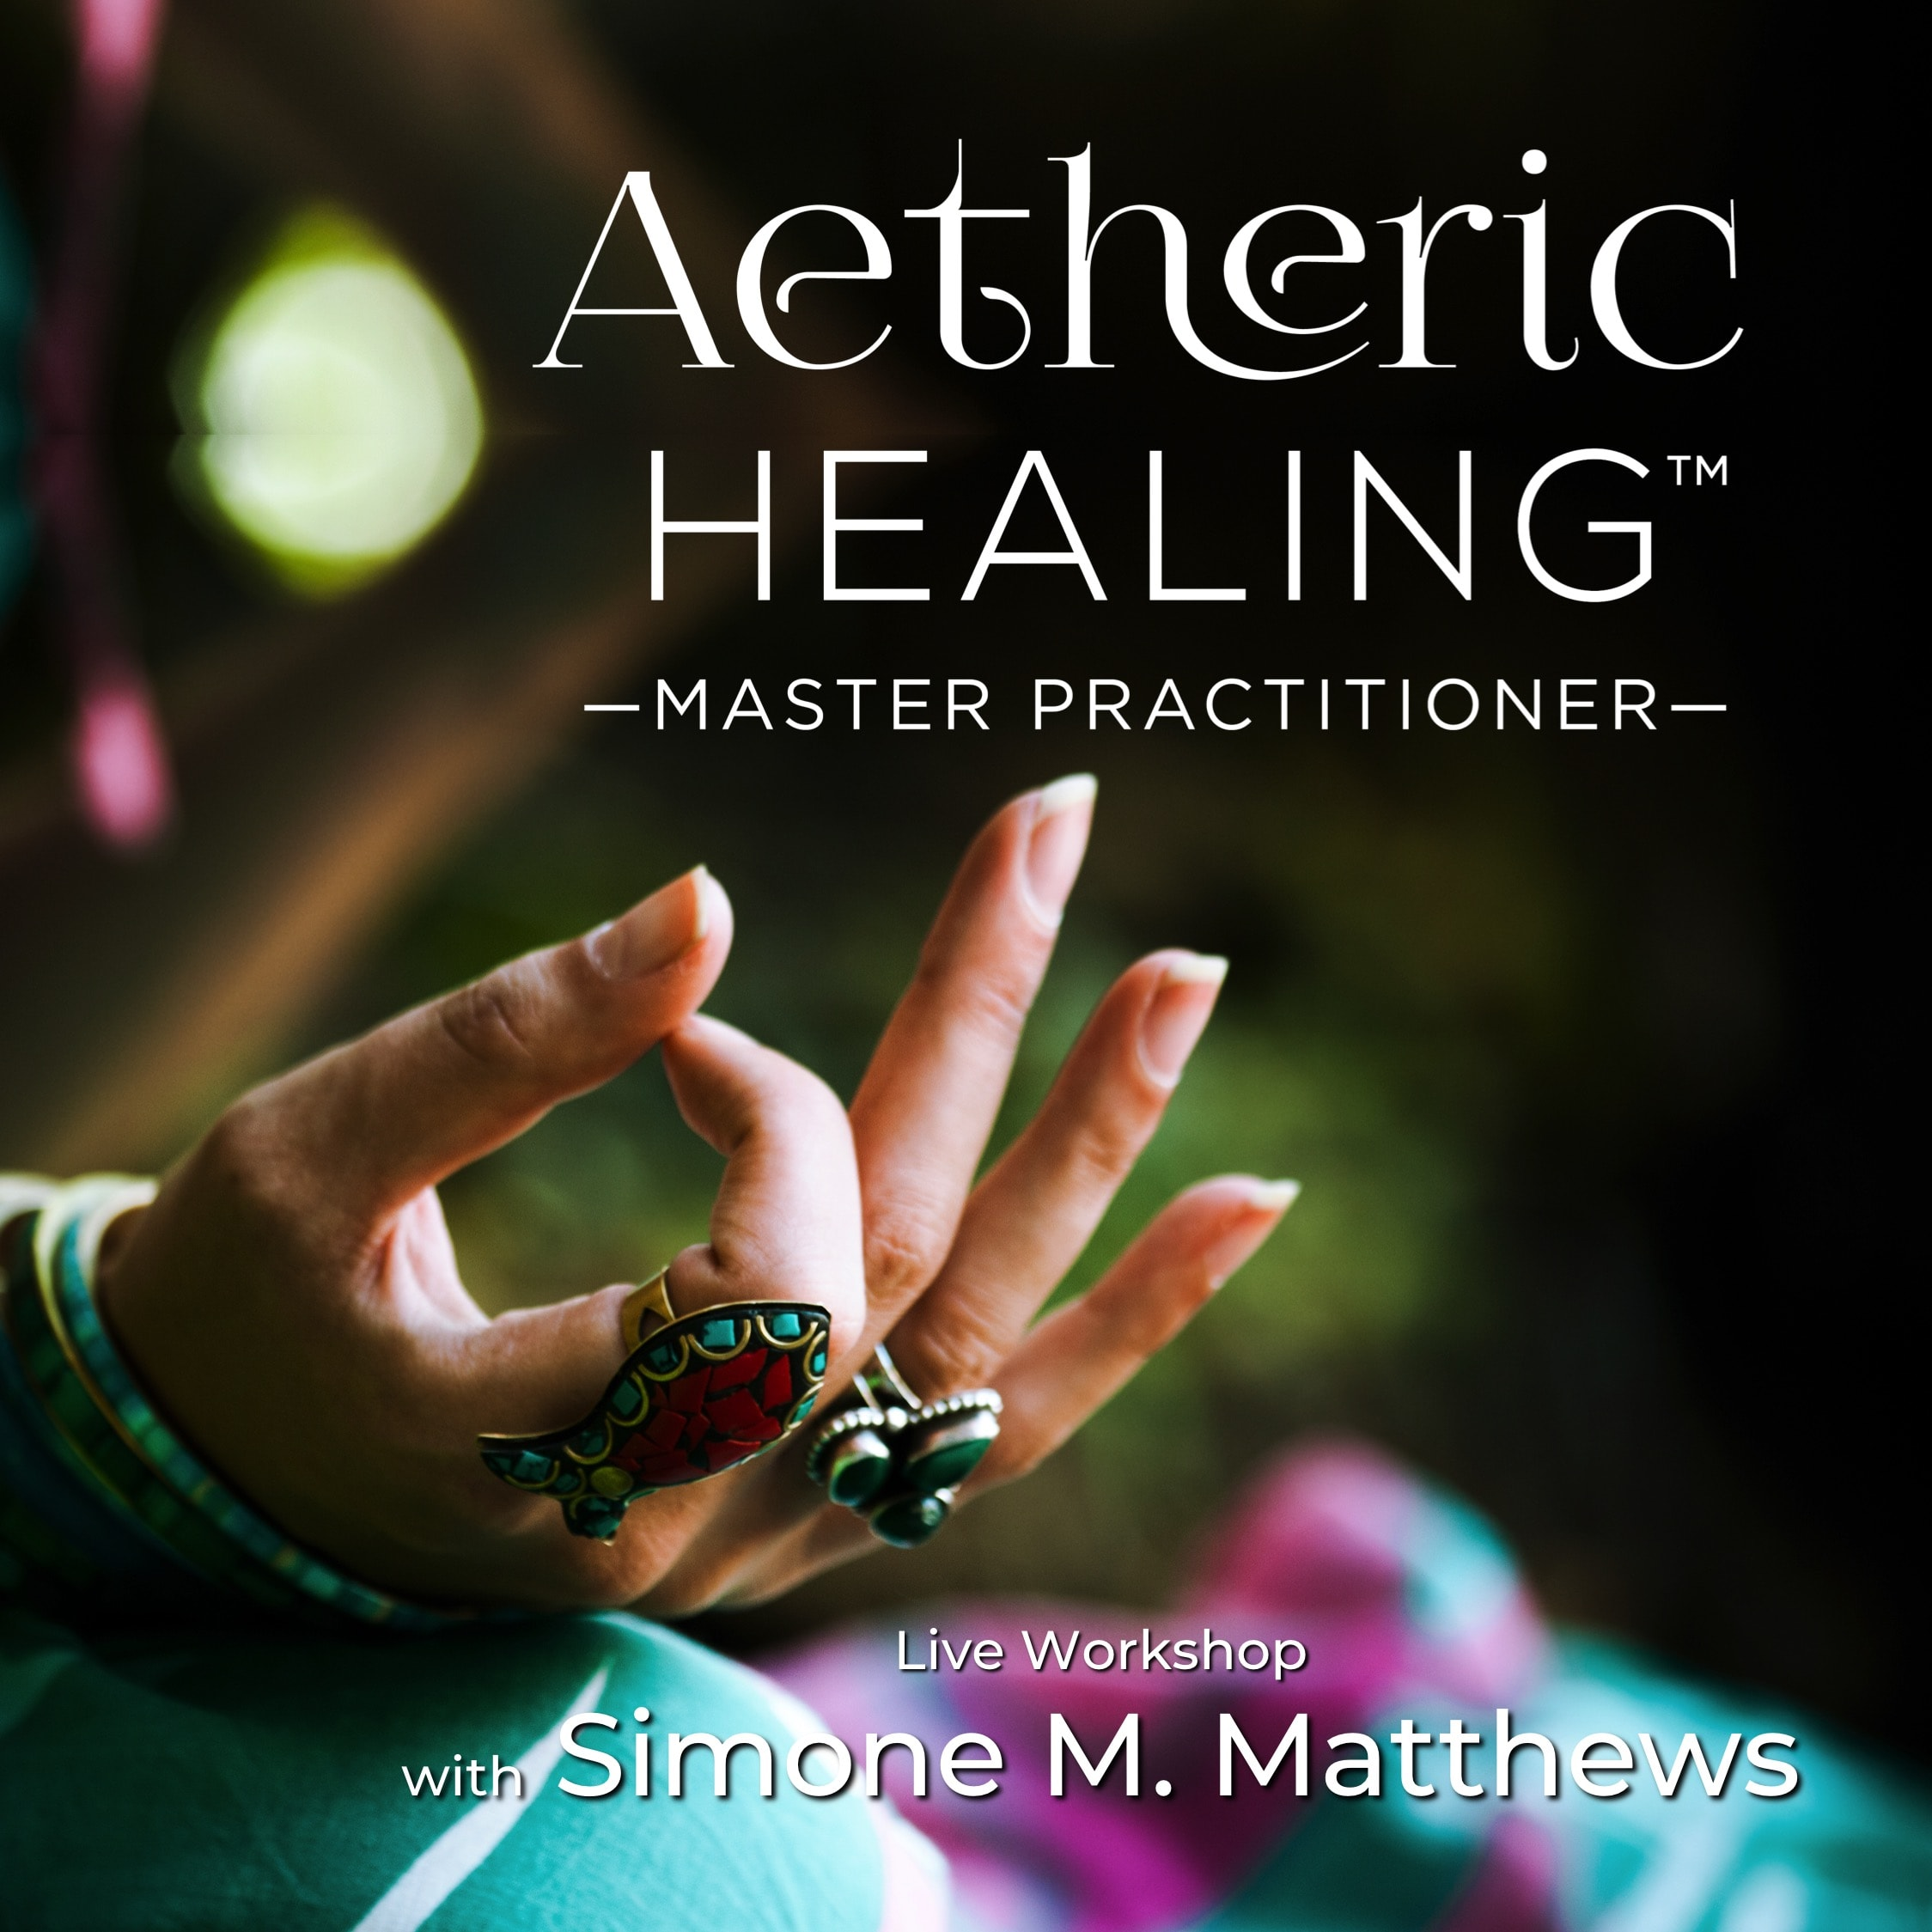 Aetheric Healing Live Workshop sq